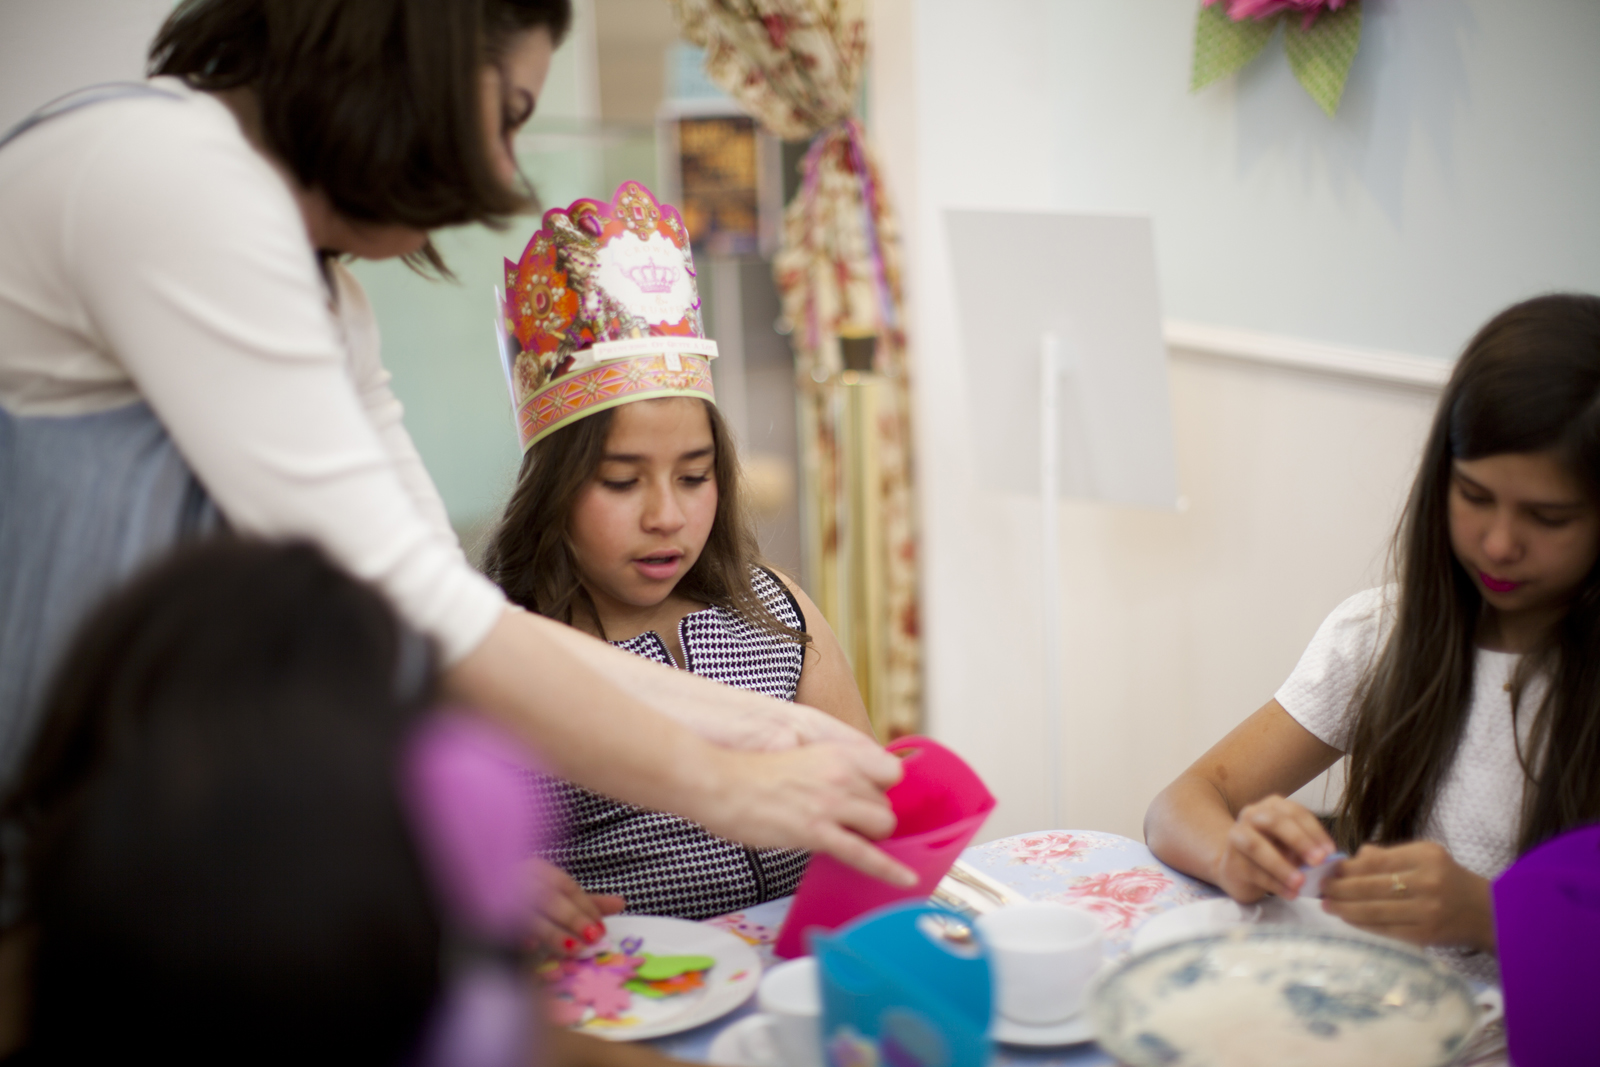 sophia_tea_party_crown_and_crumpet_san_francisco_photography_017.jpg